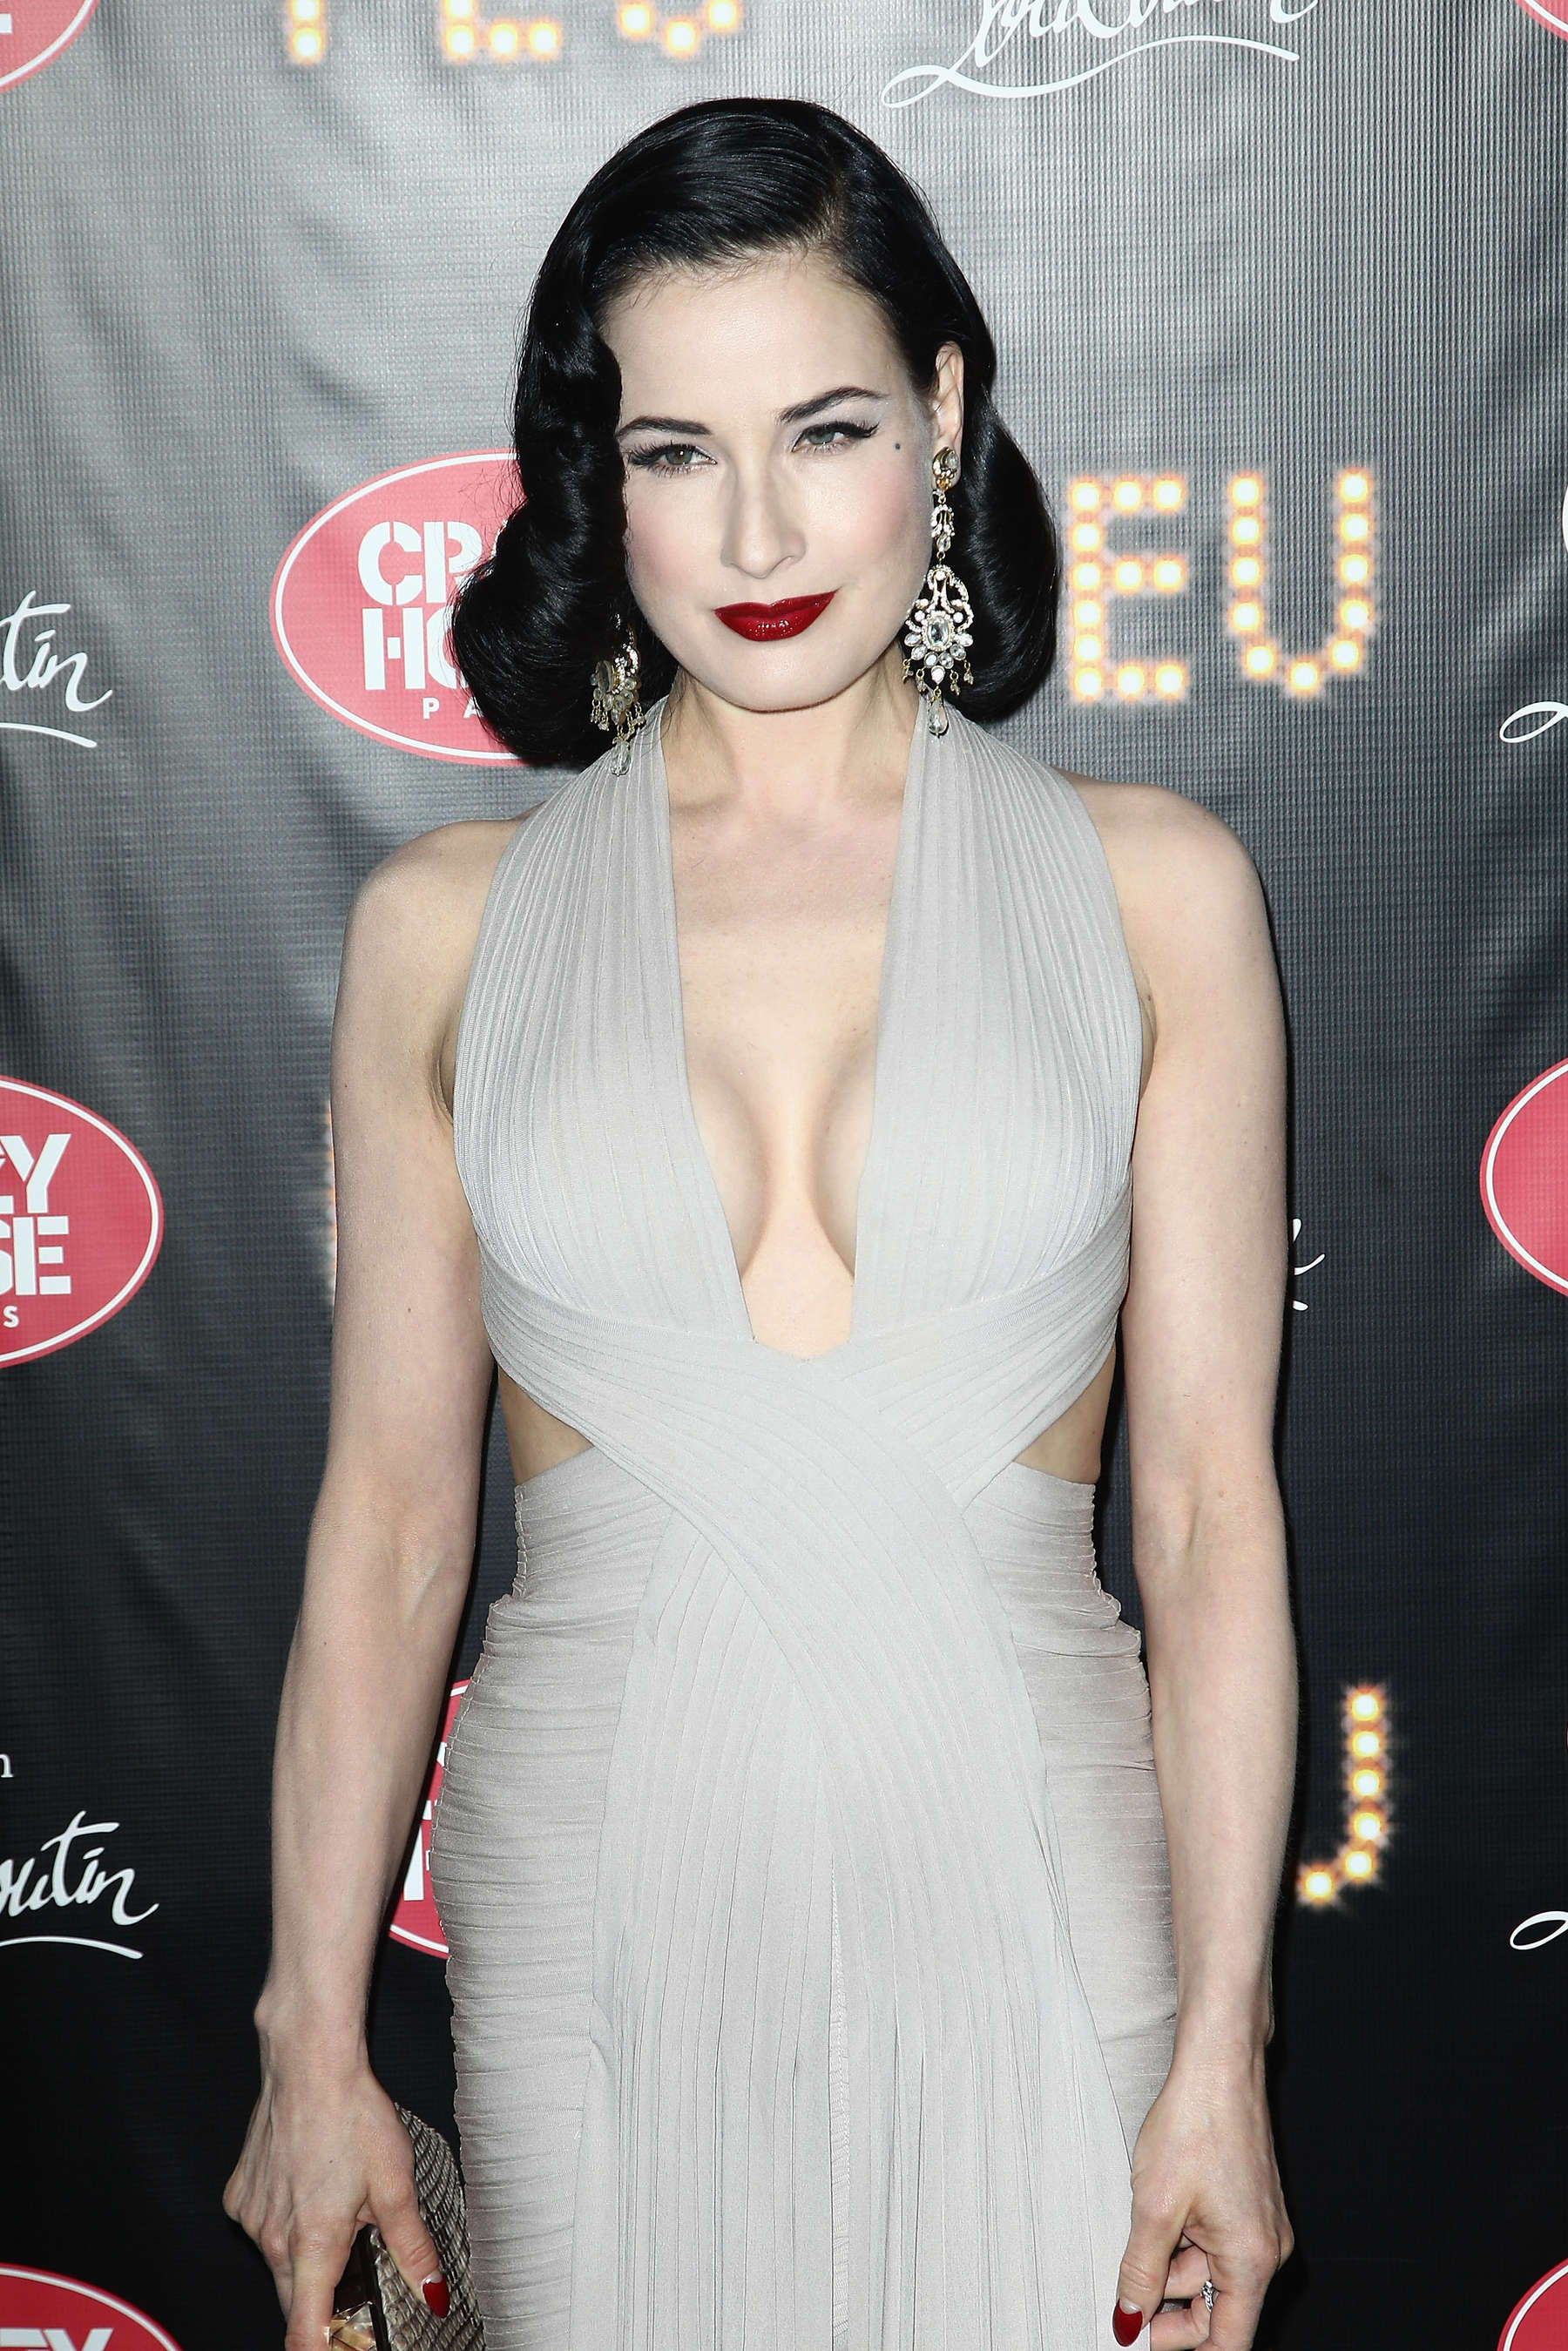 Dita Von Teese Hot At Feu Premiere 03 Gotceleb